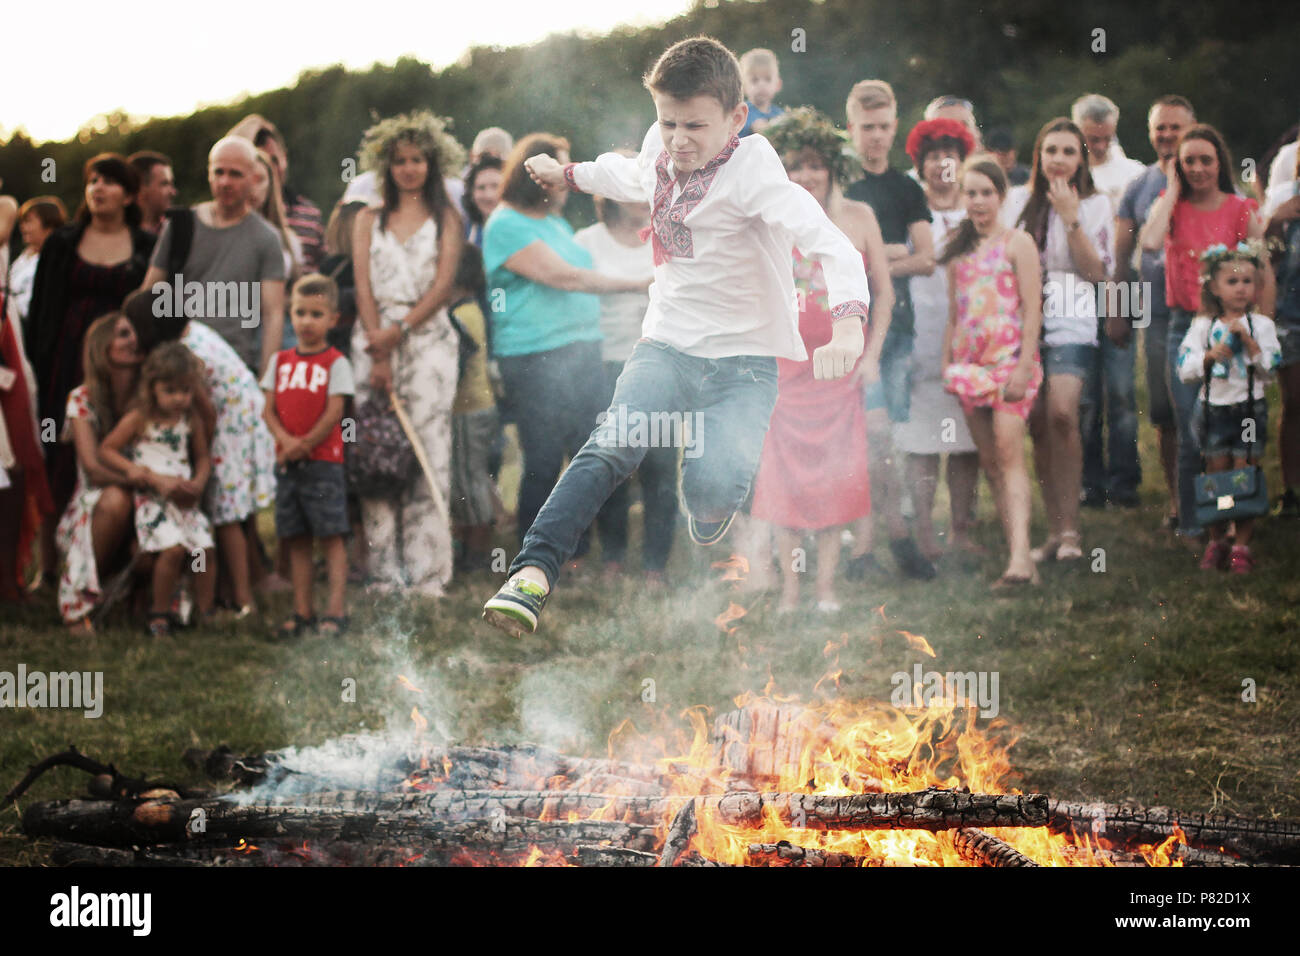 KYIV, UKRAINE - JULY 6, 2018: Young boy jumps over the flames of bonfire during the traditional Slavic celebration of Ivana Kupala holiday in Pirogovo - Stock Image